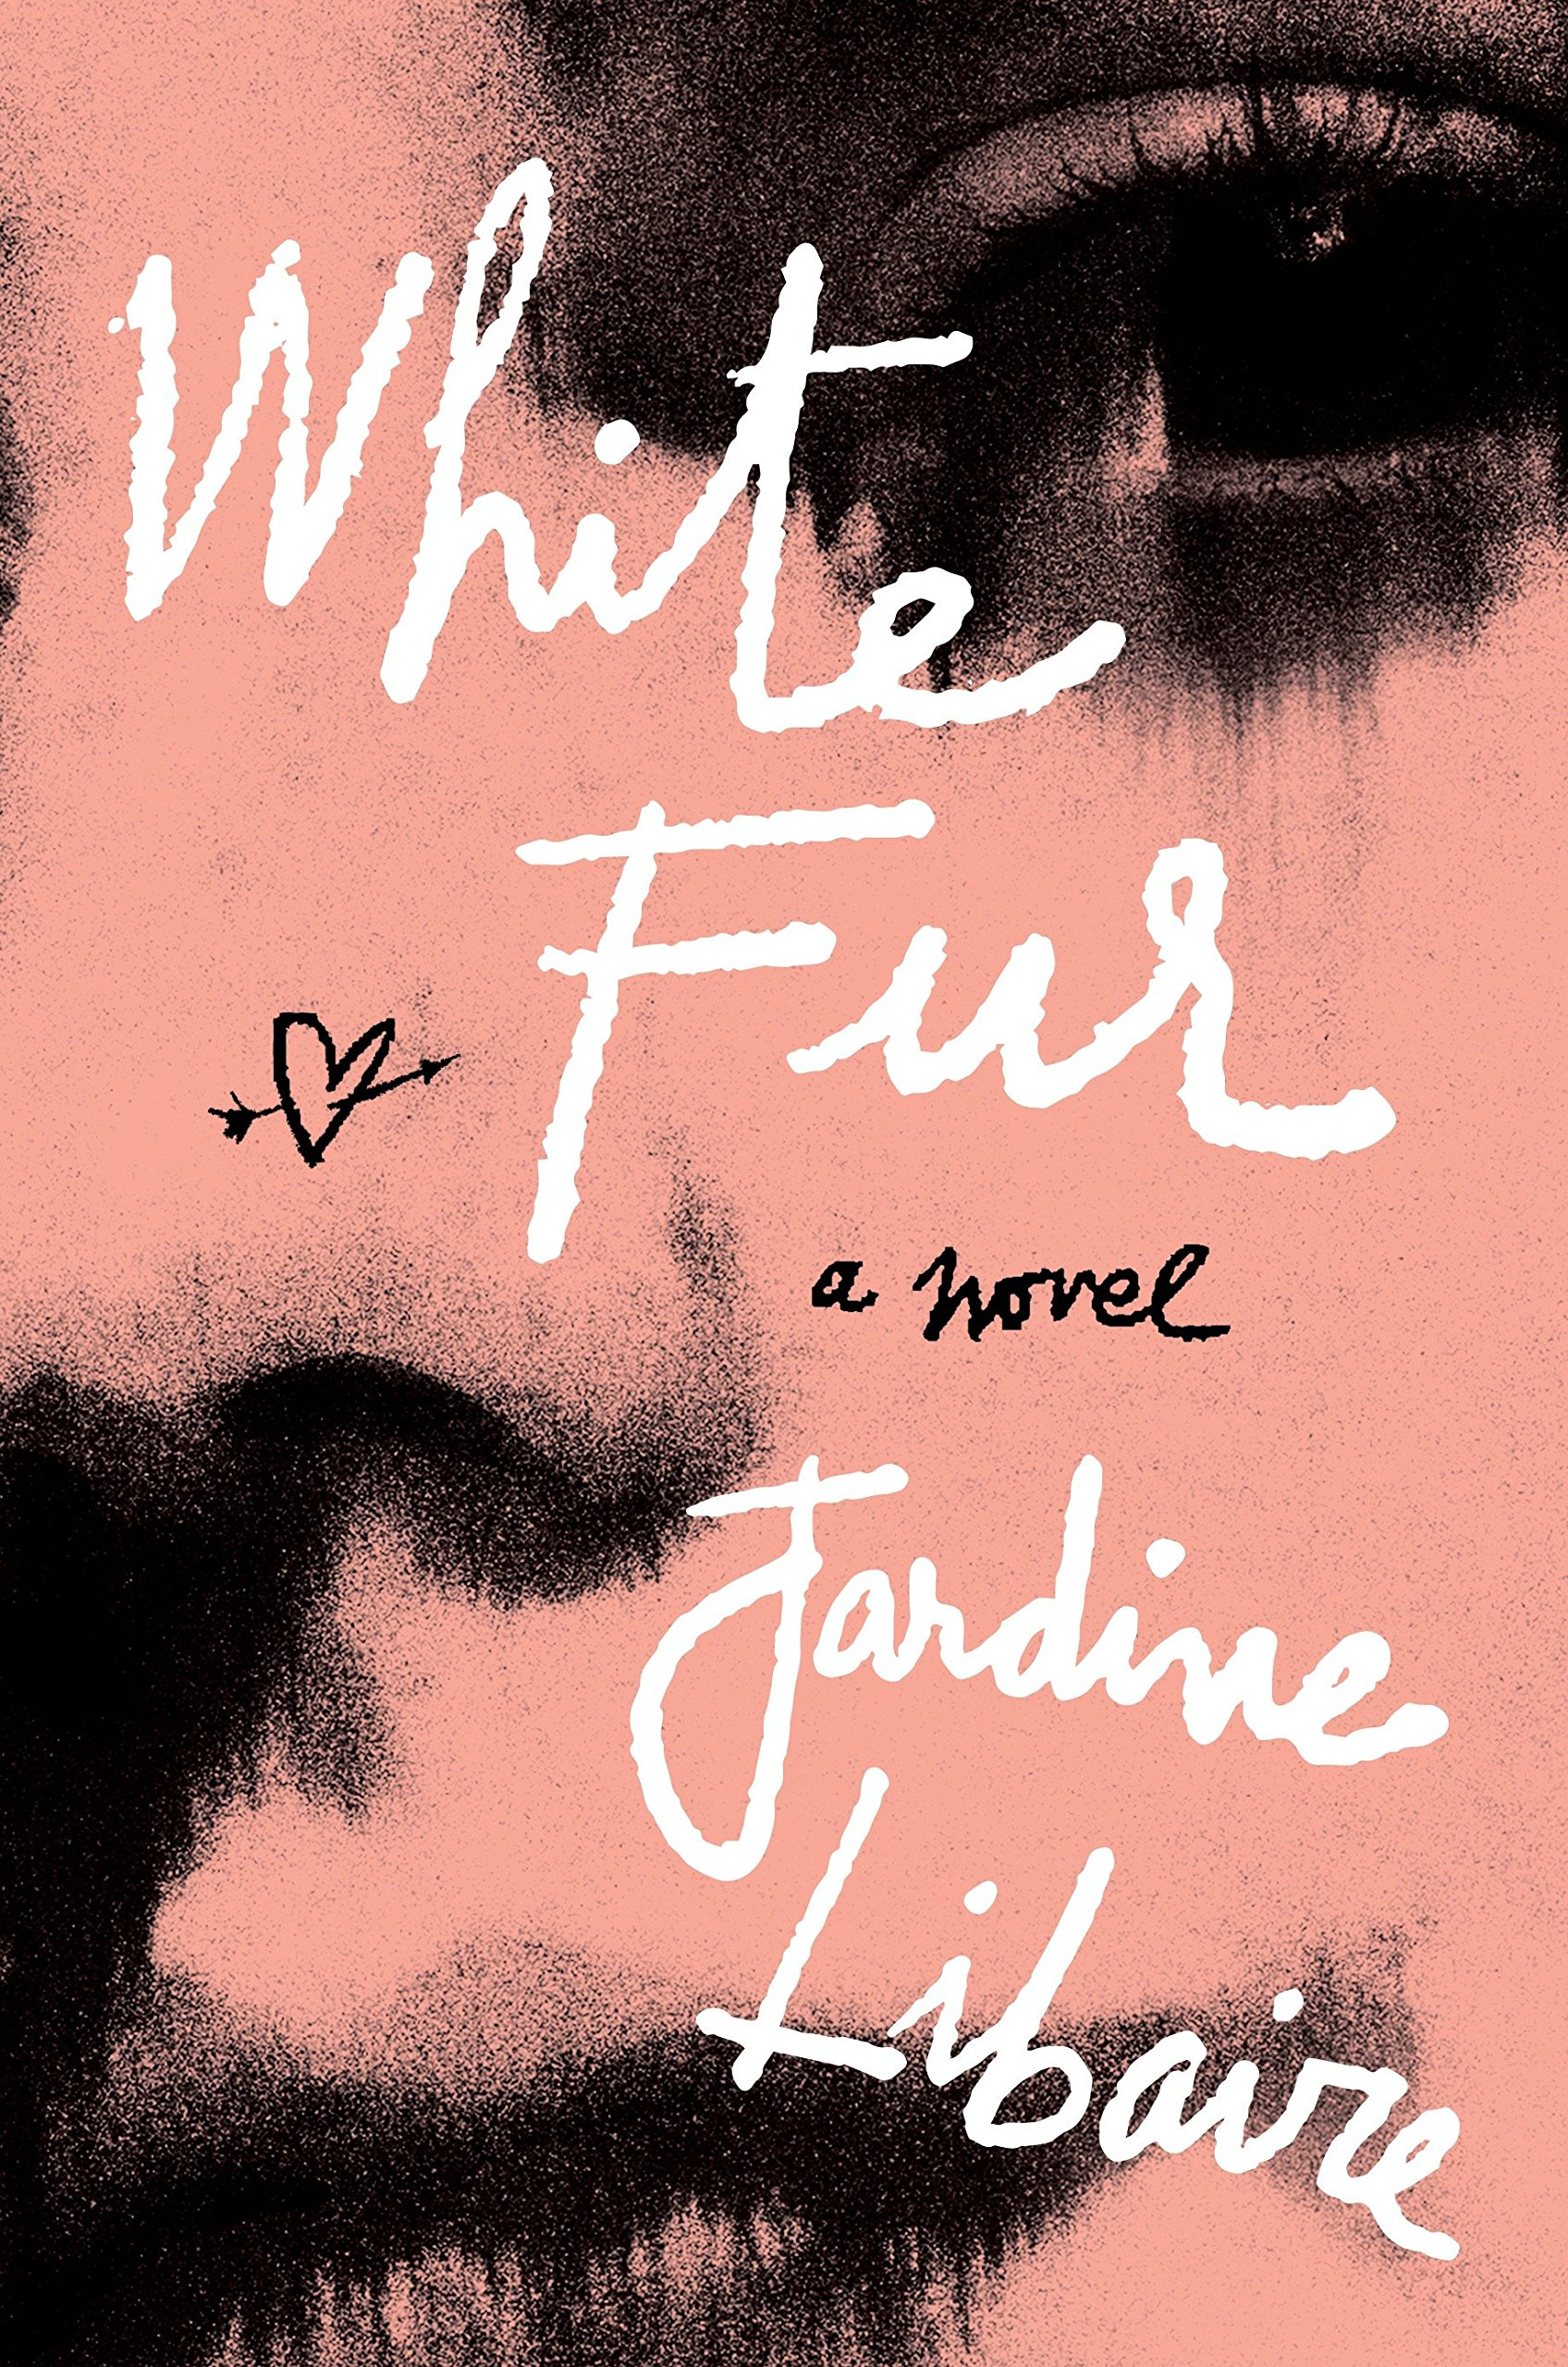 White Fur: A Novel: Jardine Libaire: 9780451497925: Amazon com: Books